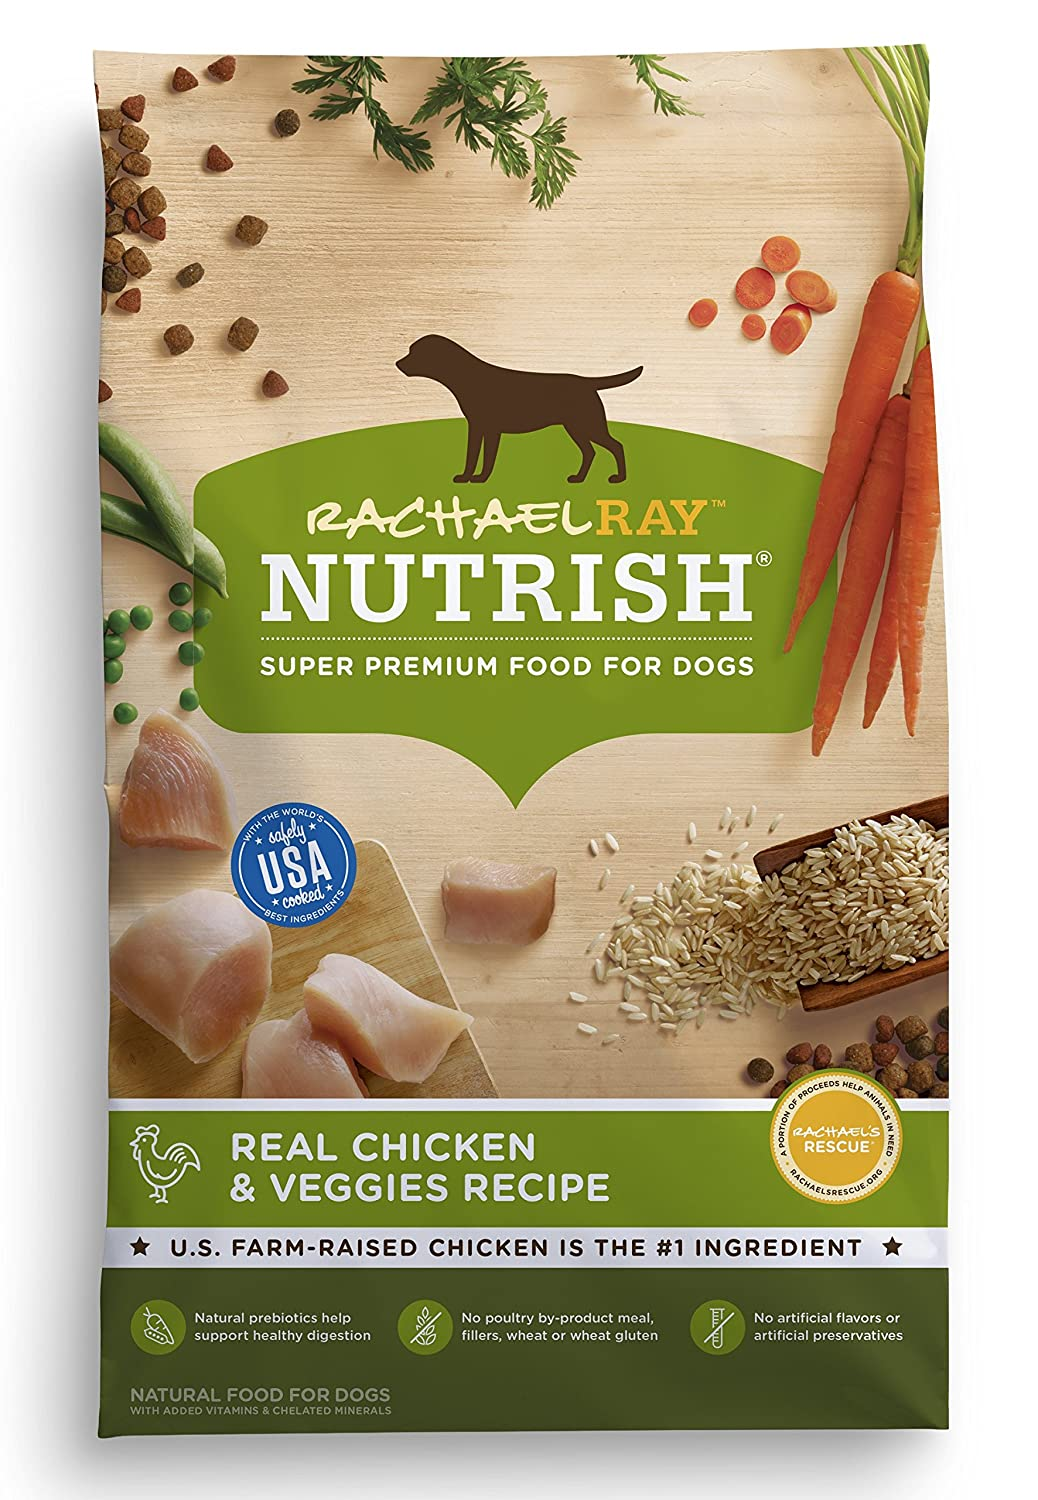 Rachael Ray Nutrish Natural Dry Dog Food, Real Chicken & Veggies Recipe by Rachael Ray Nutrish